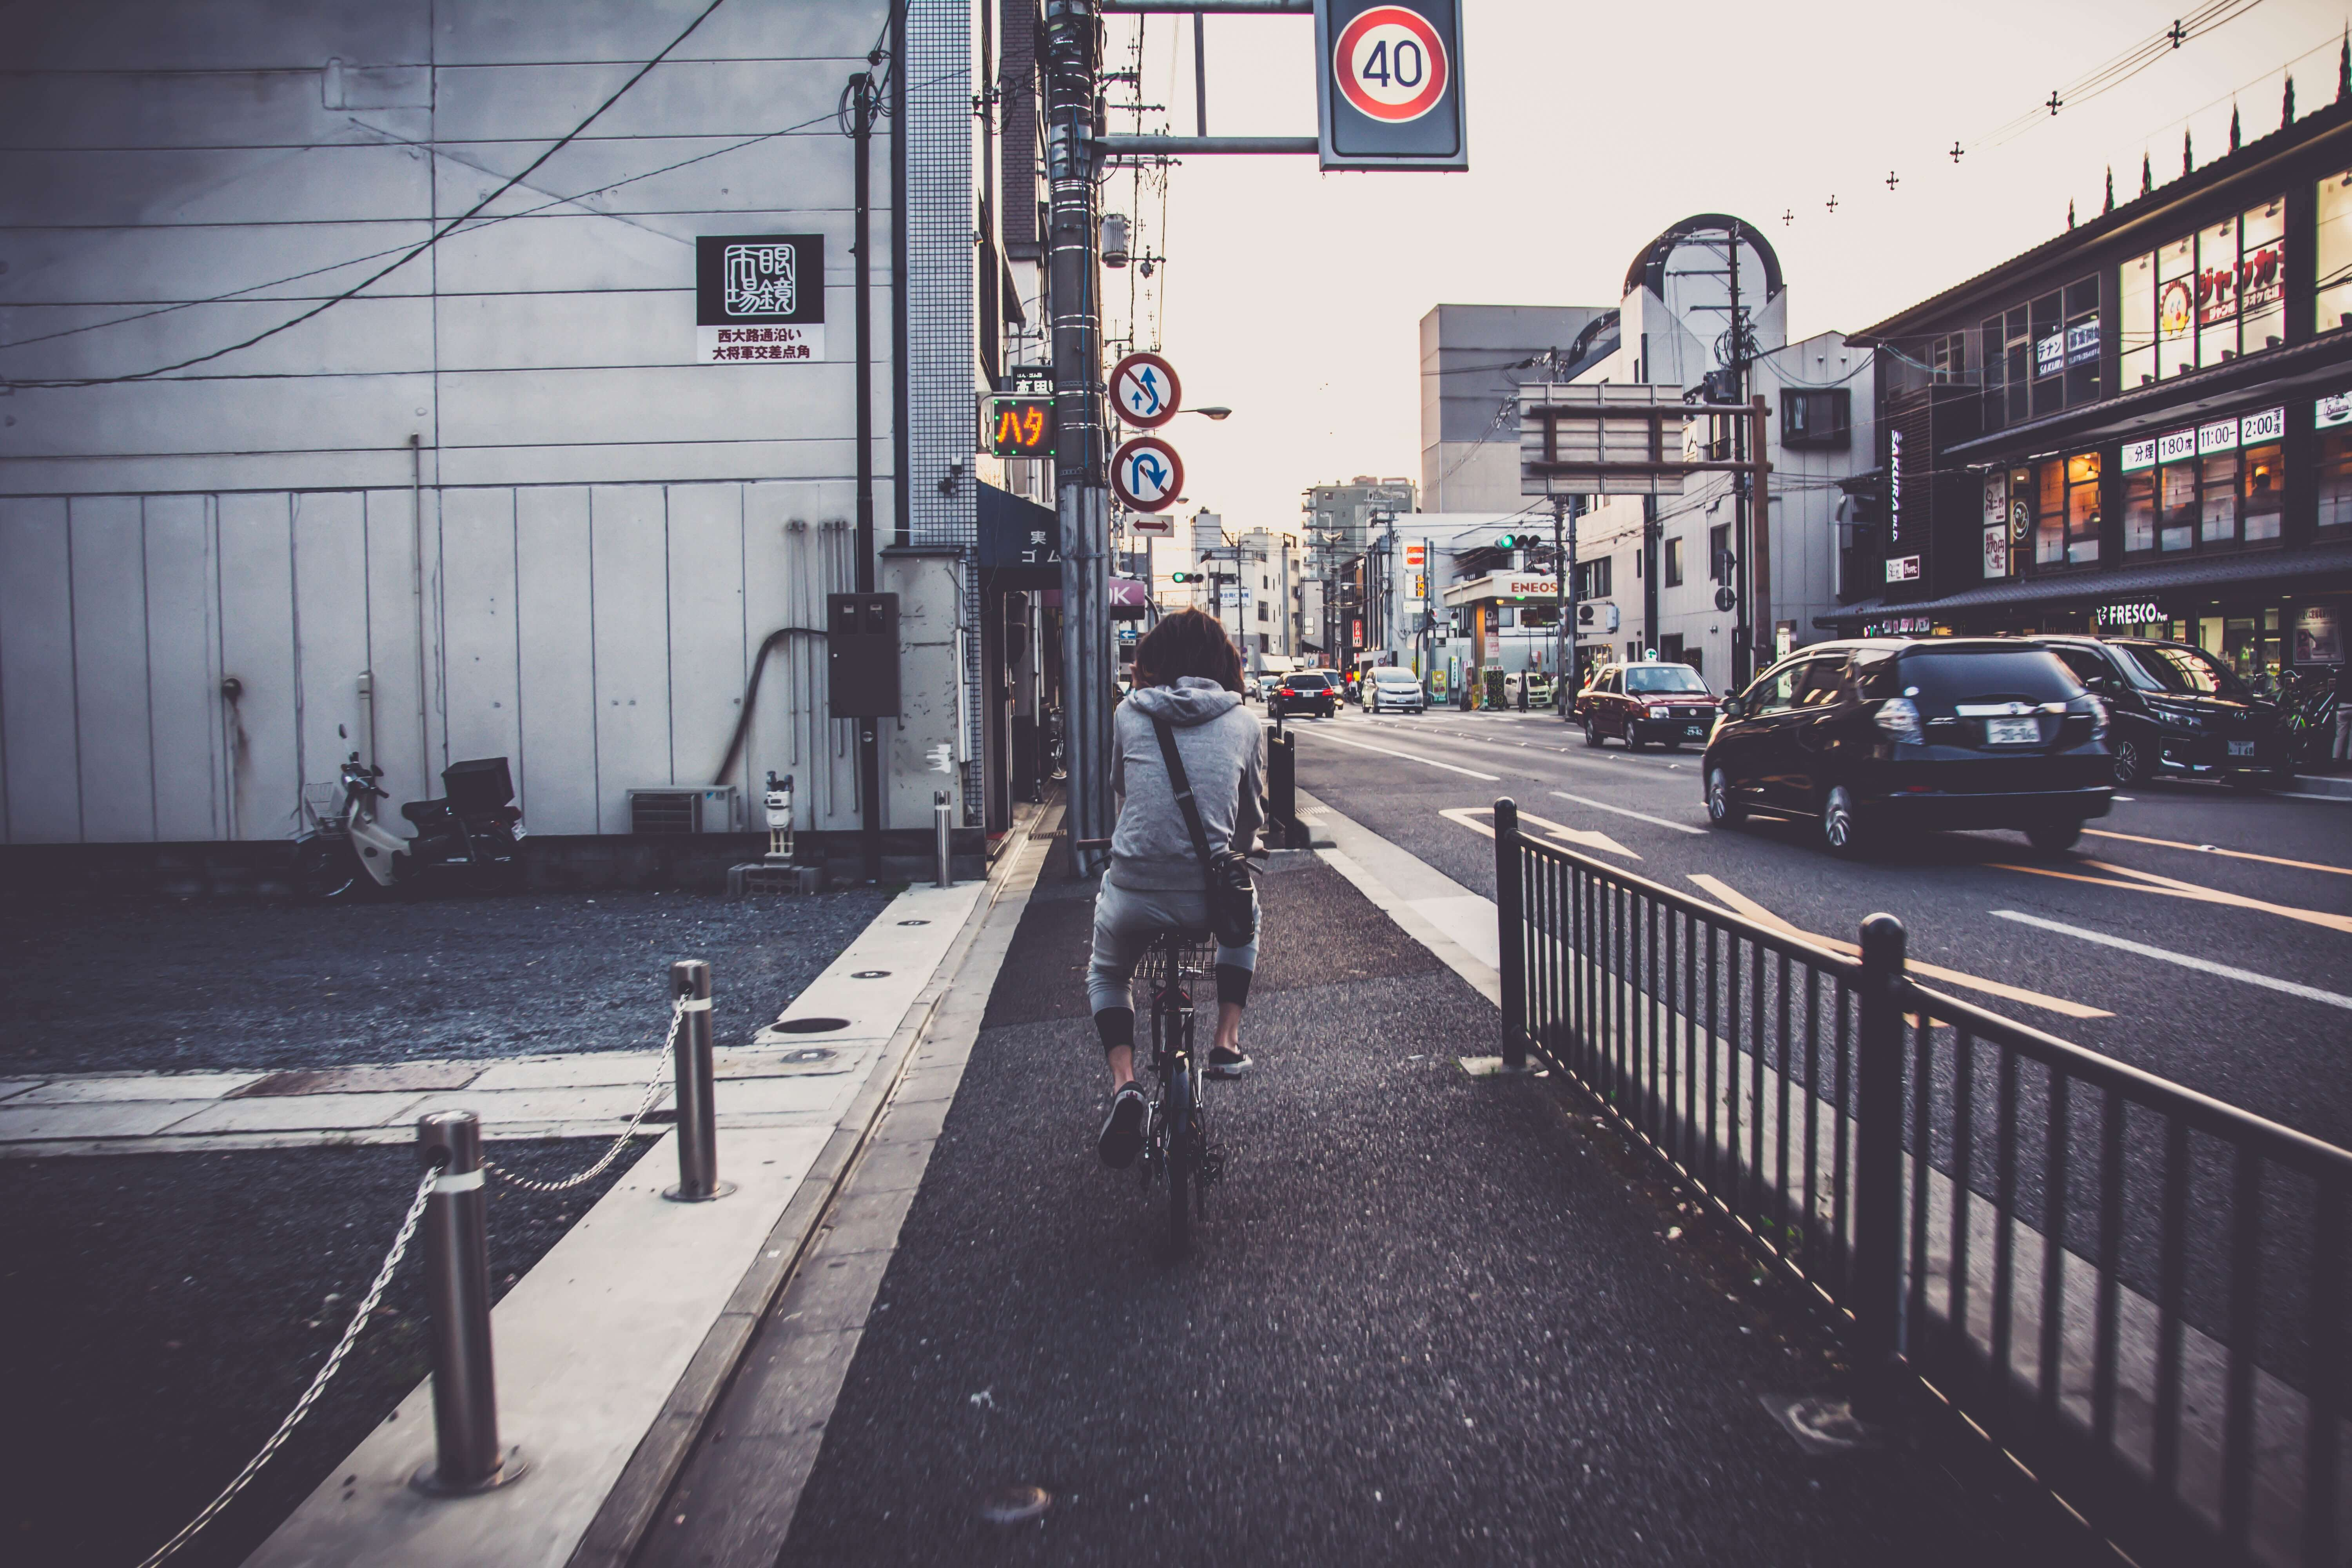 Biking On Busy Roads Made Easy - AutoAccident.com